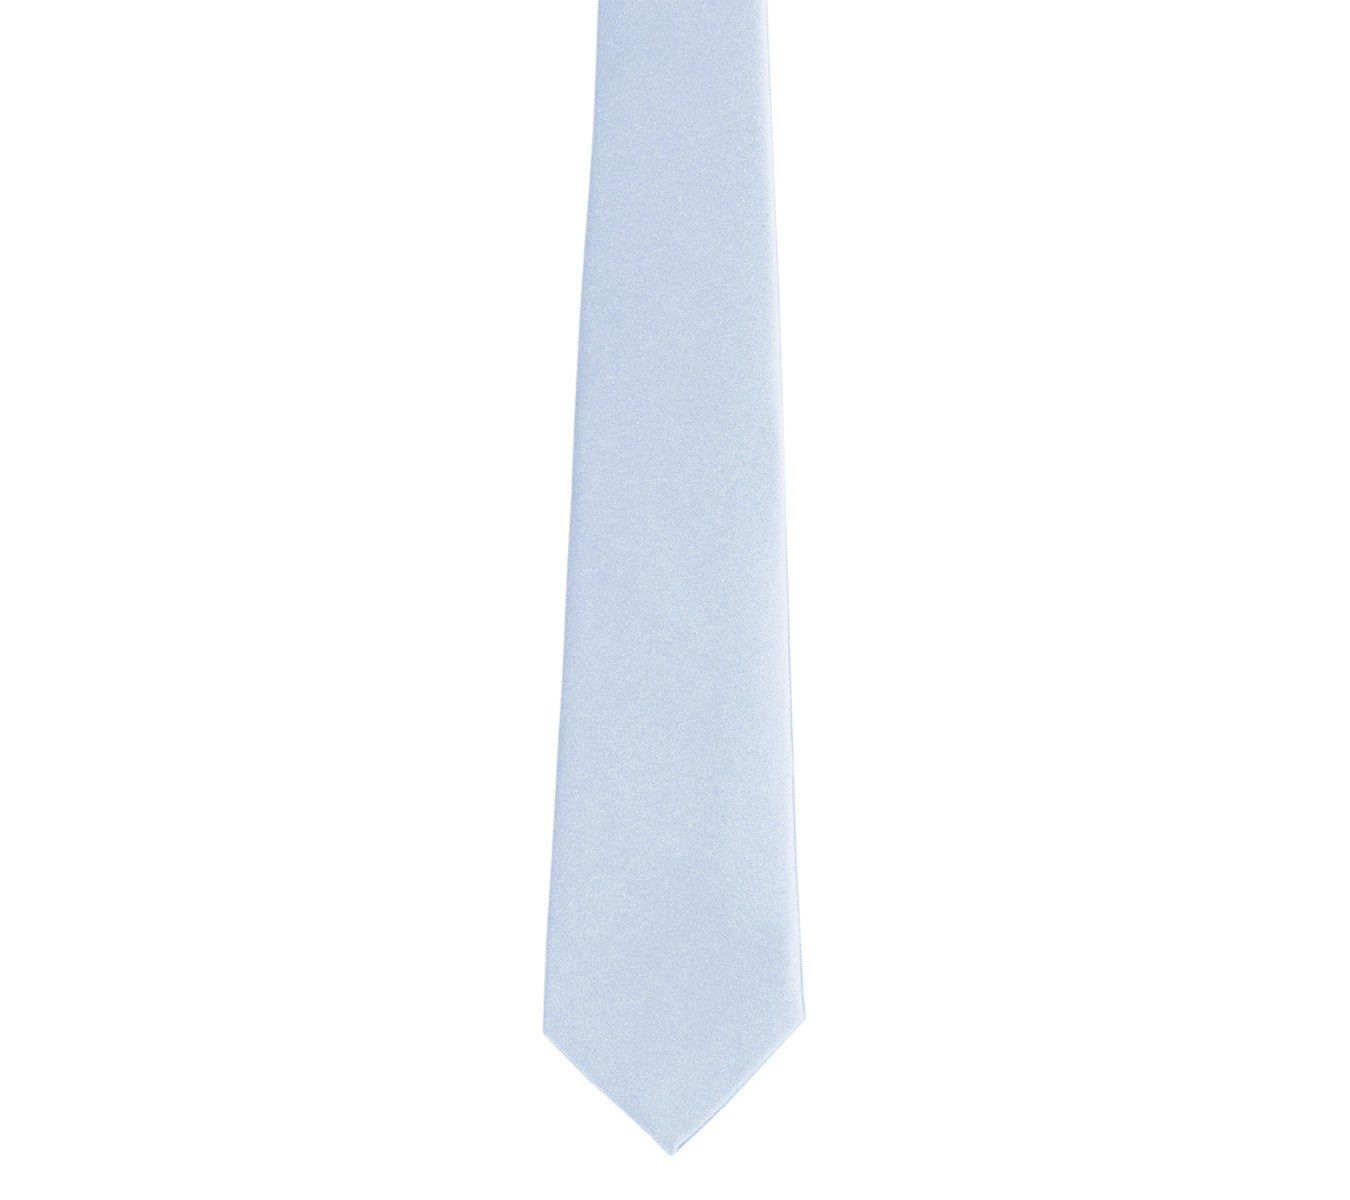 Powder Blue Tie